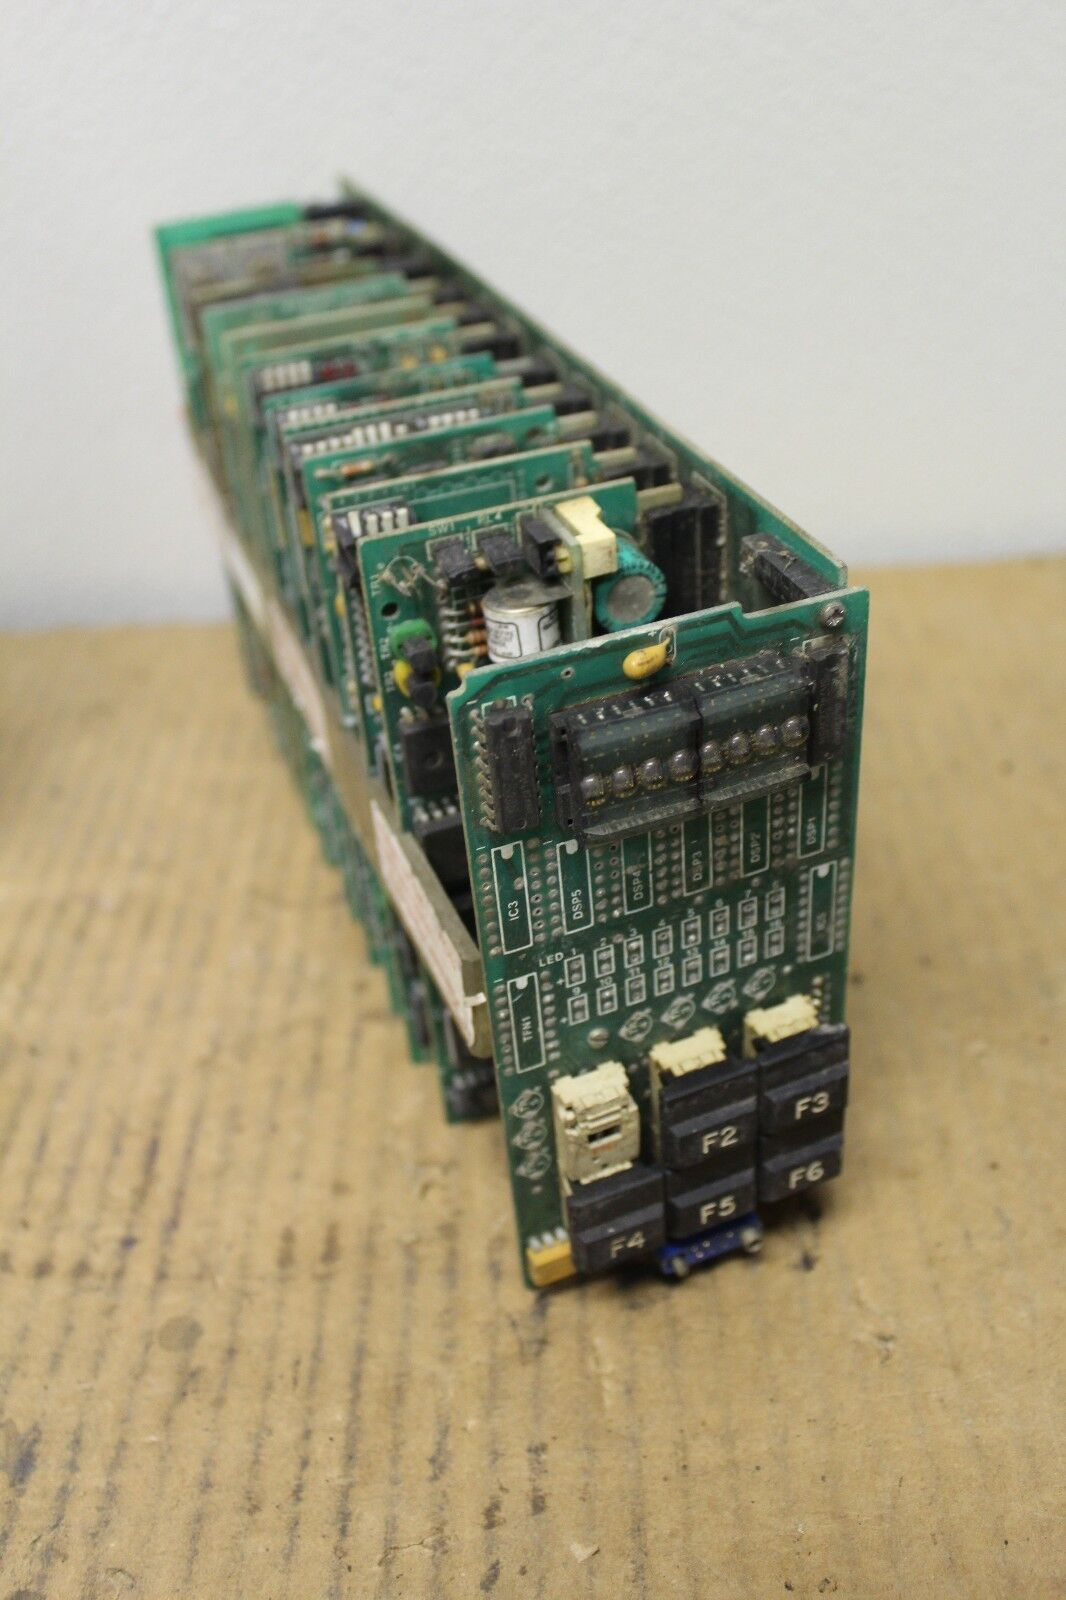 TURNBULL TCS 8 LOOP CONTROLLER COMMUNICATIONS MULTIPLEXER MOTHER BOARD 076034 2